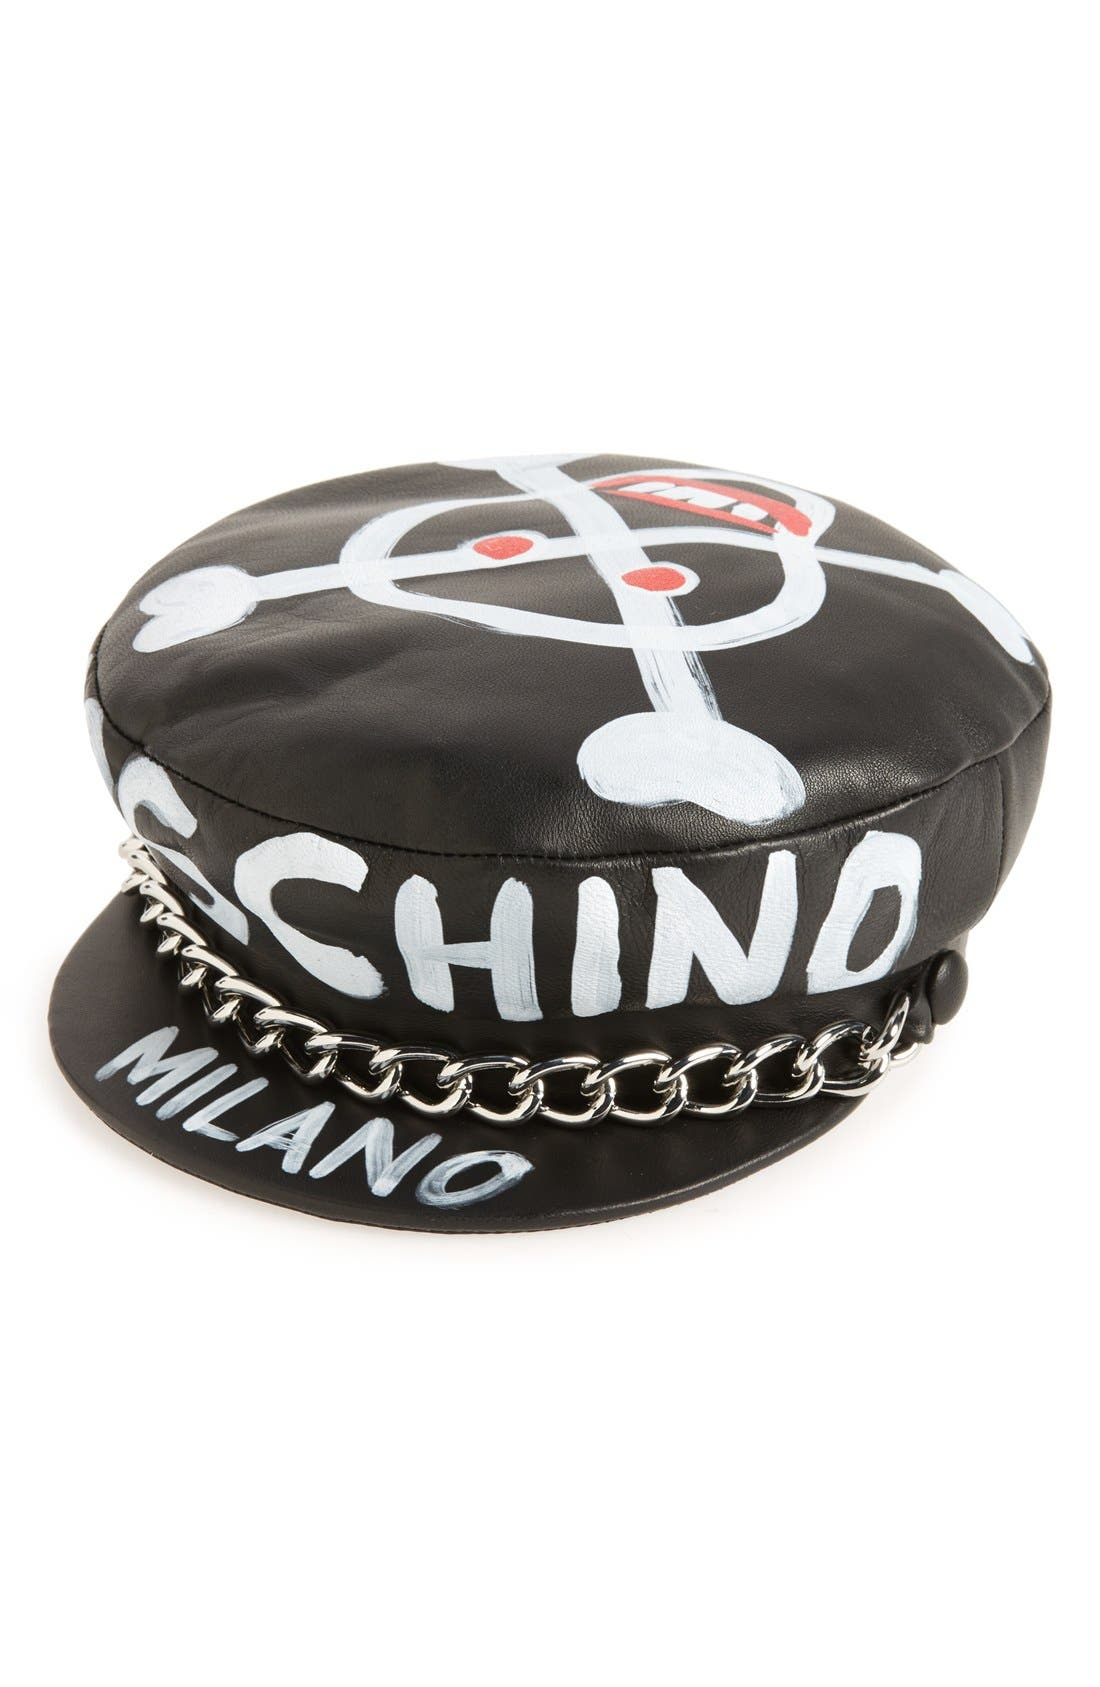 Skulls Leather Cap,                             Main thumbnail 1, color,                             Black